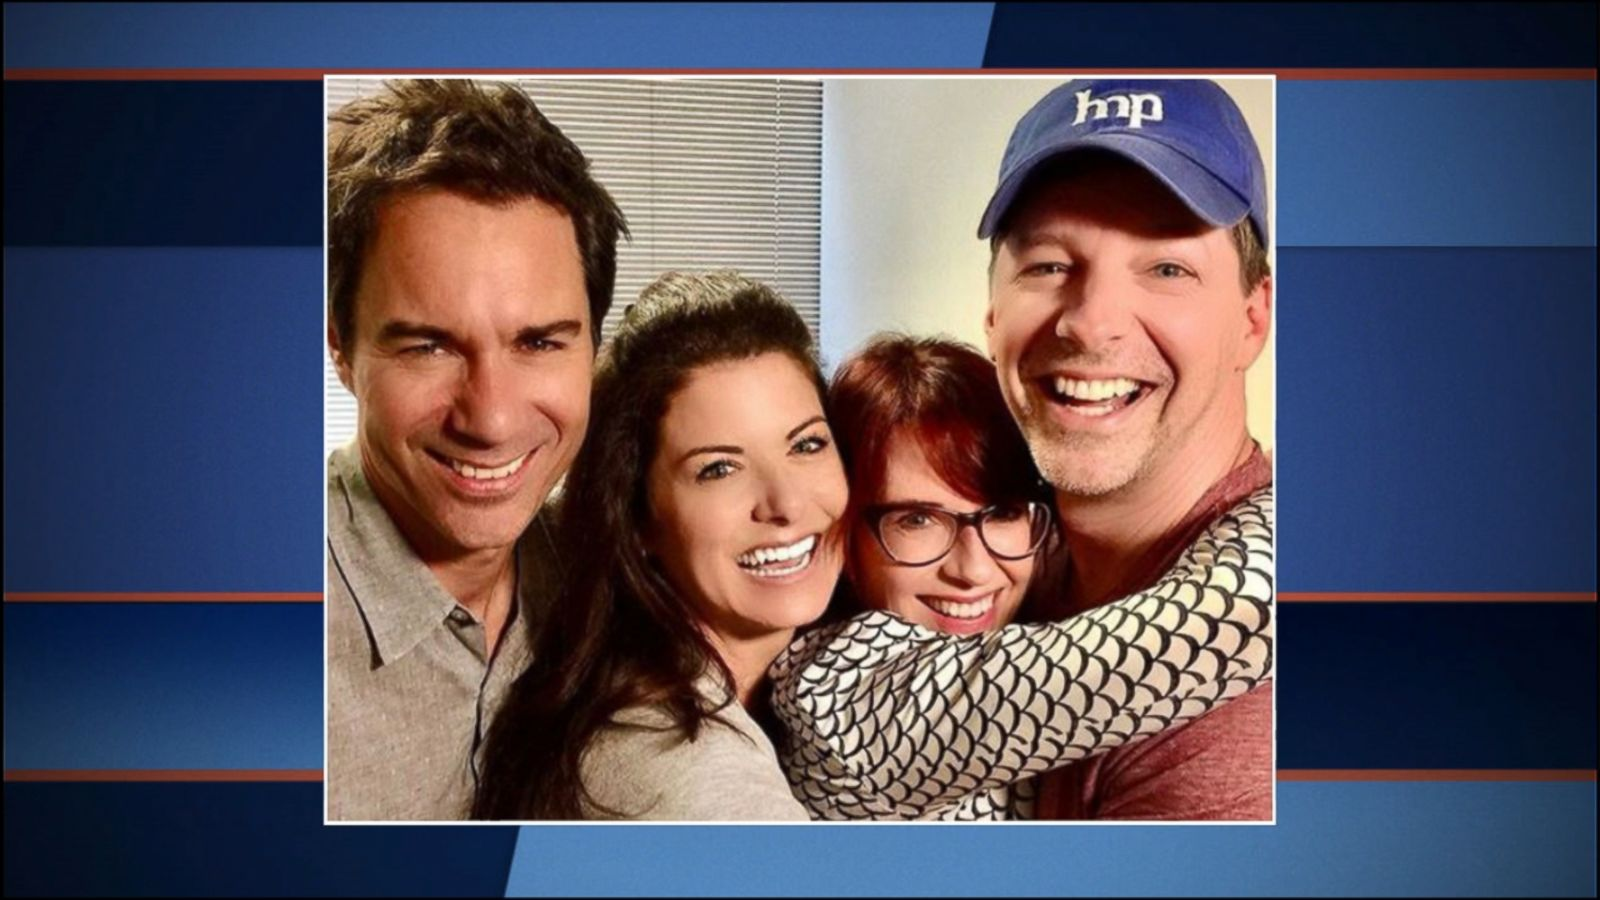 VIDEO: Sean Hayes, Megan Mullally, Debra Messing and Eric McCormack were photographed together to the delight of fans.